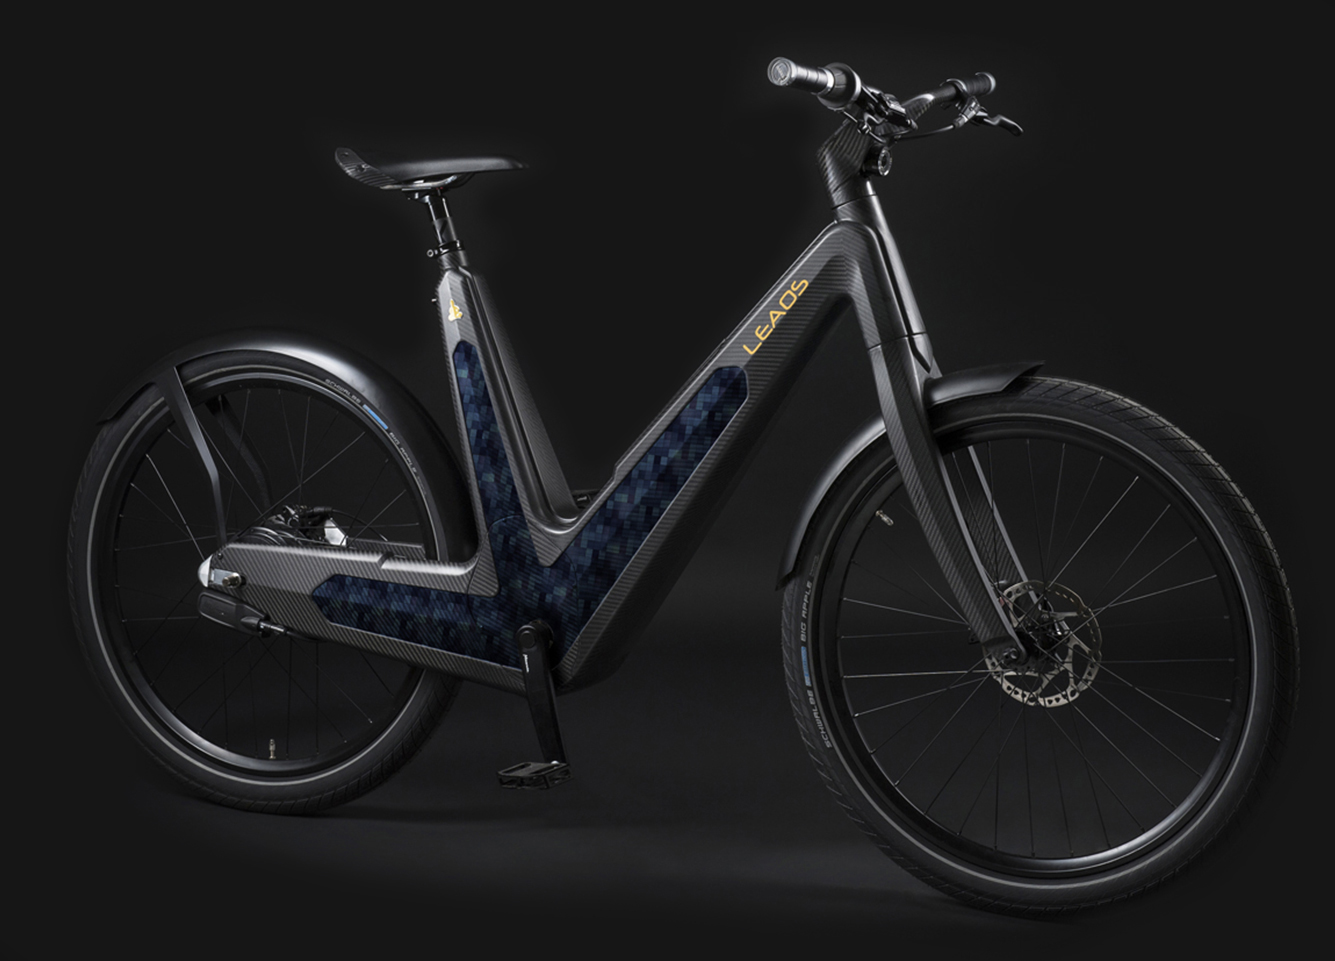 leaos-solar-urban-bike-solar-battery-loading-new-panel-blue